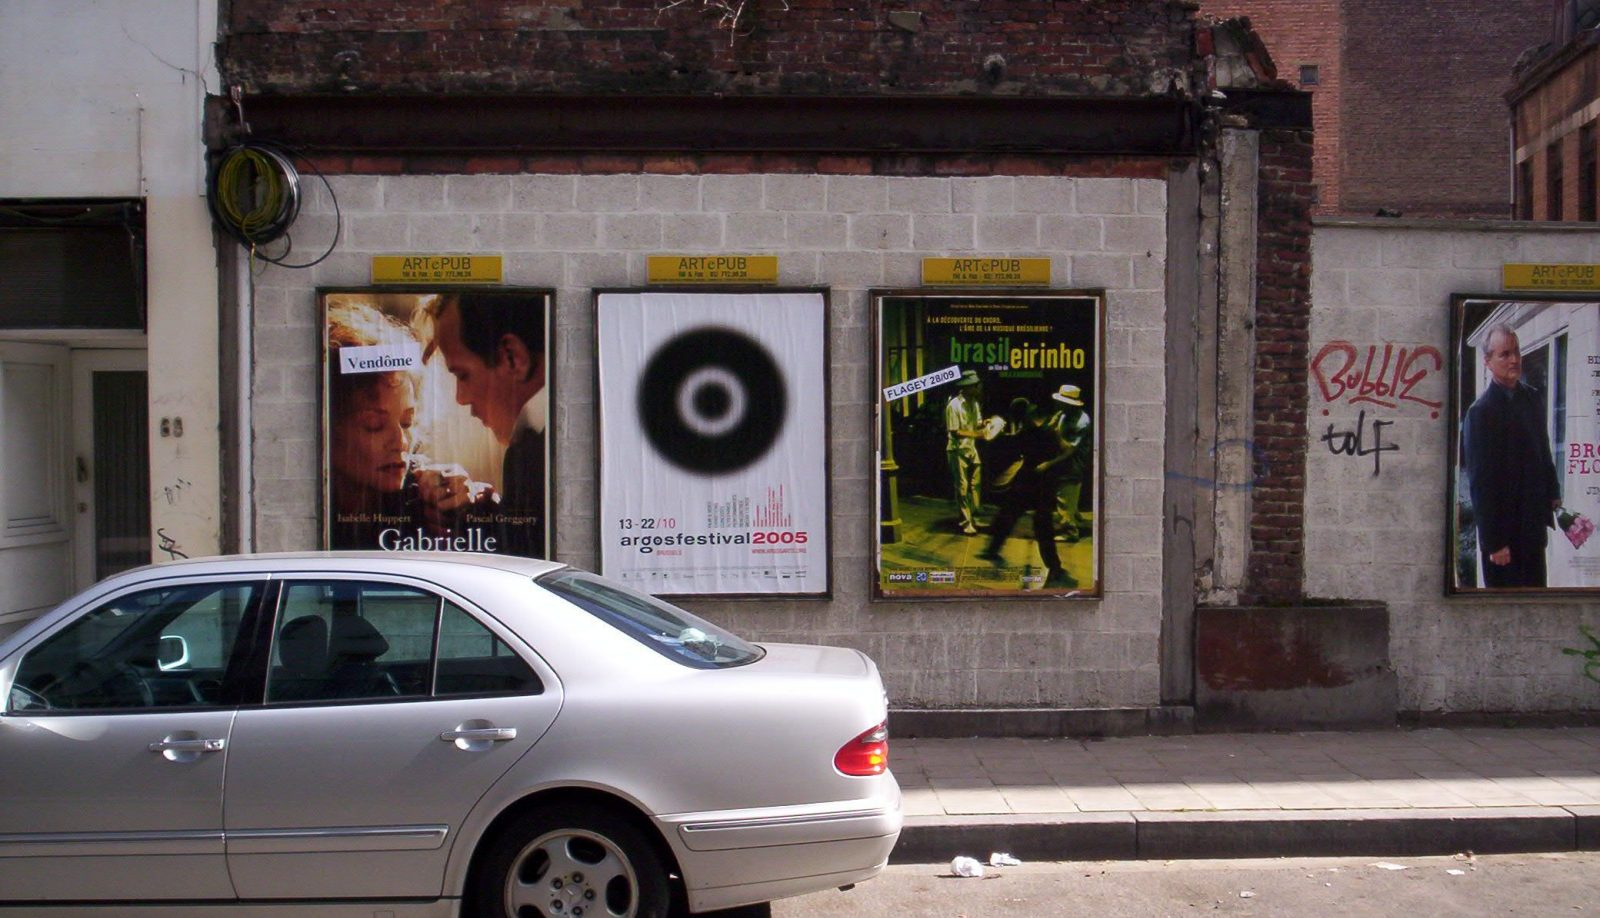 Street view of the argosfestival 2005 poster campaign for (13 –  22 October 2005).